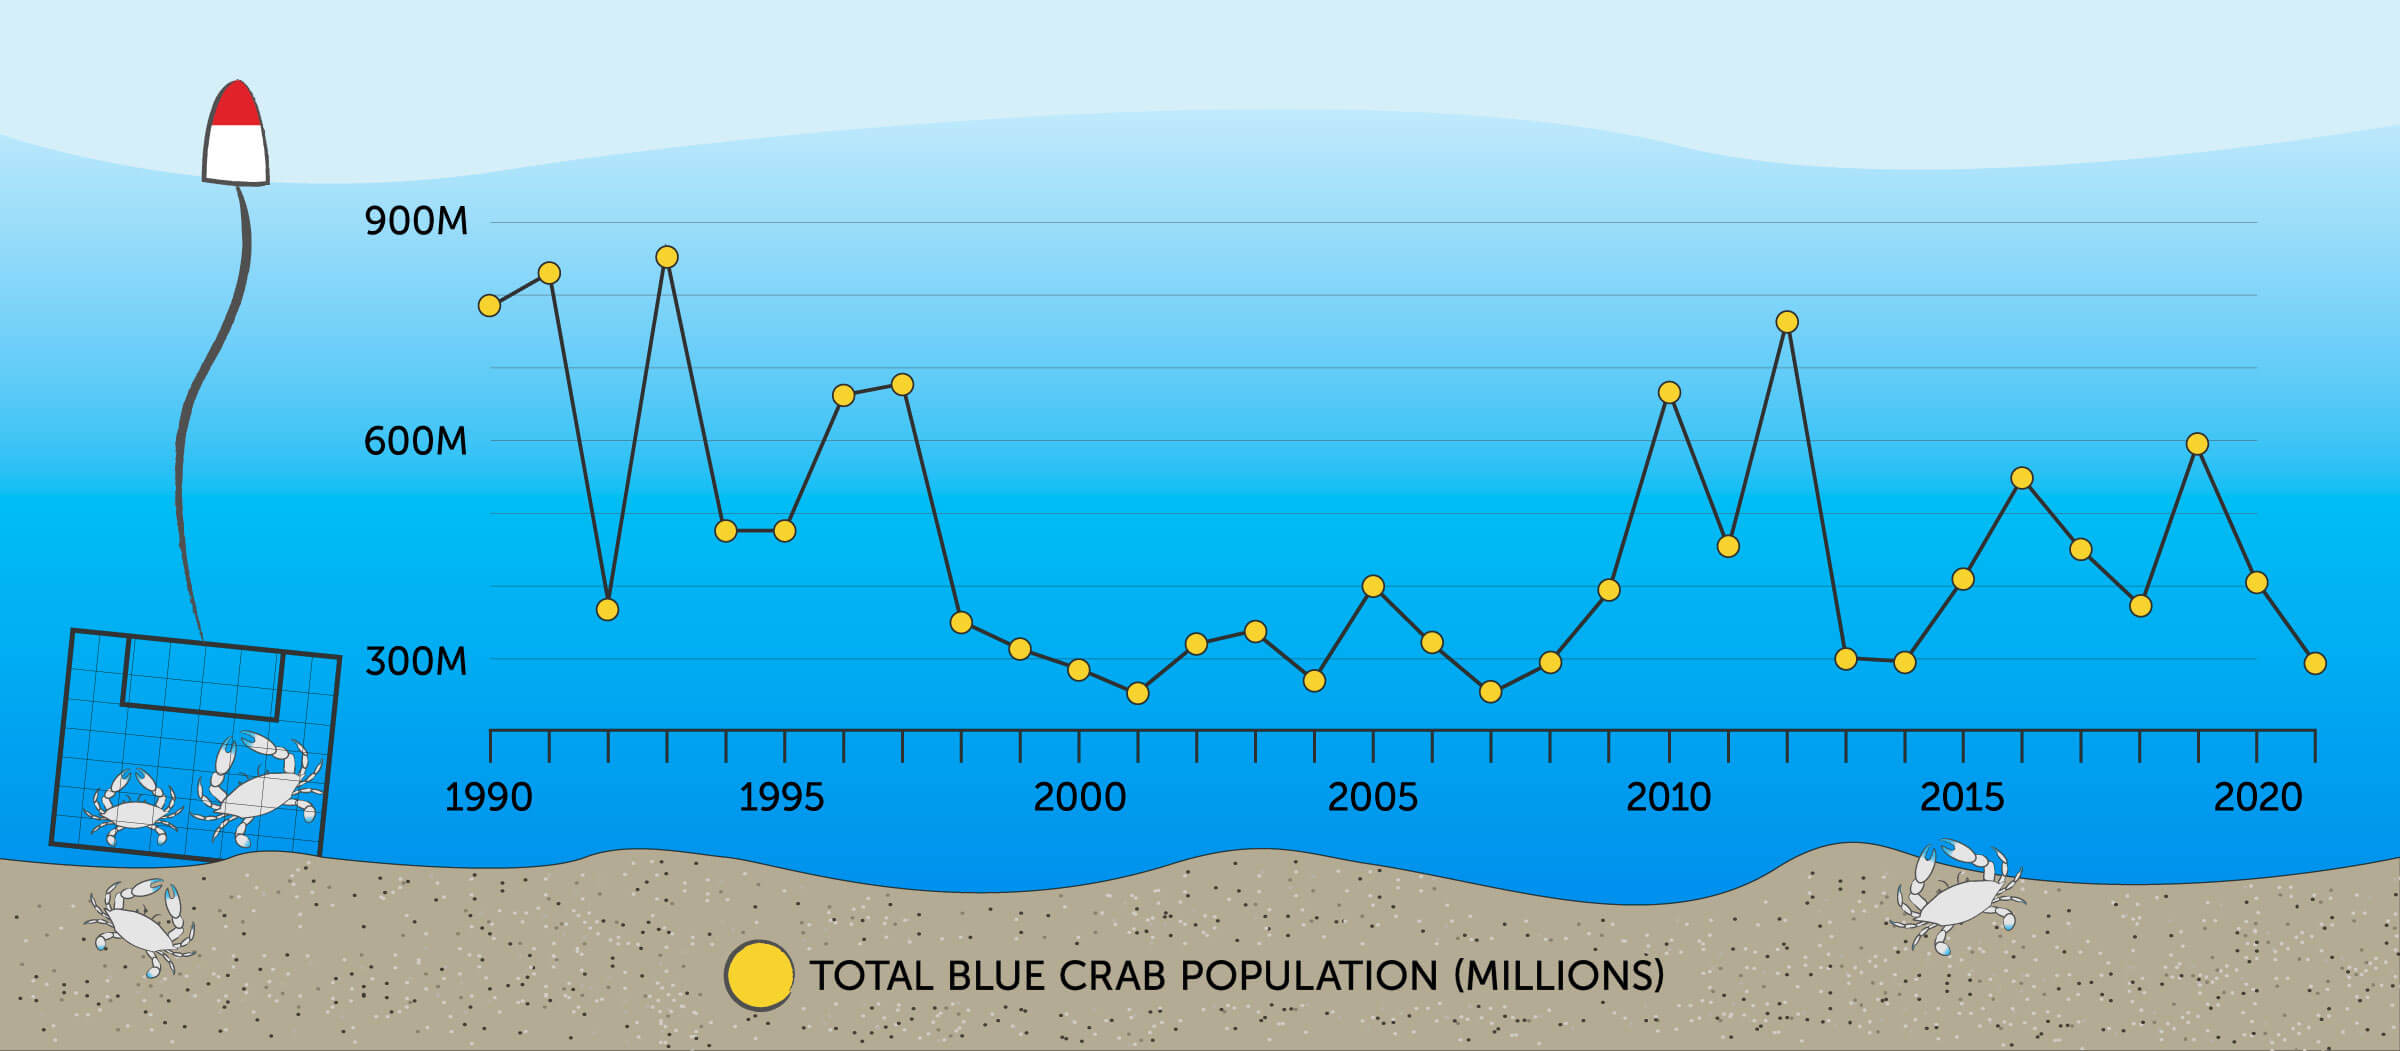 Line graph illustrating the total blue crab population in the Chesapeake Bay from 1990 to 2019.